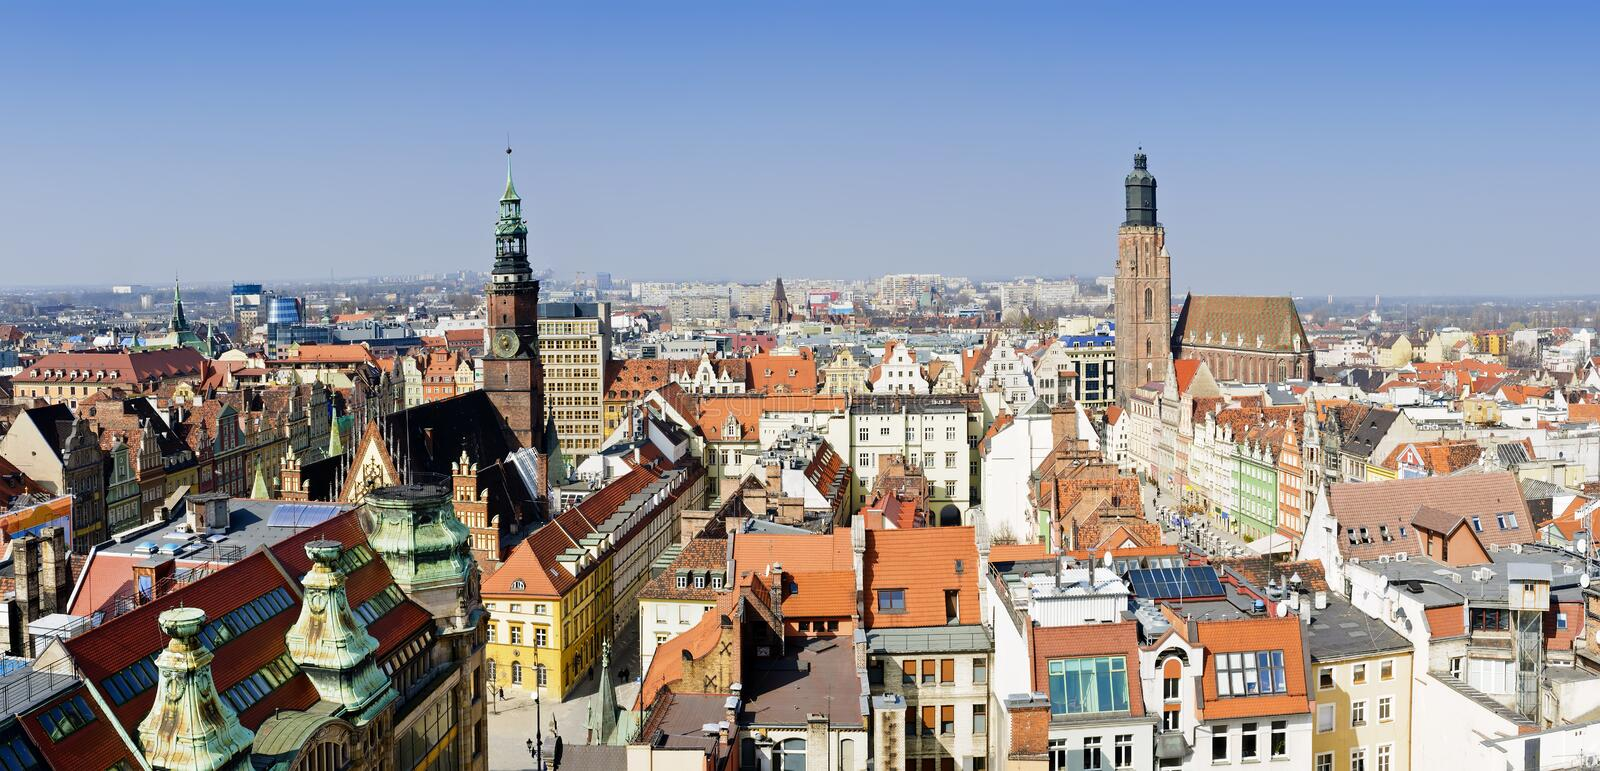 Wroclaw do panorama, poland foto de stock royalty free